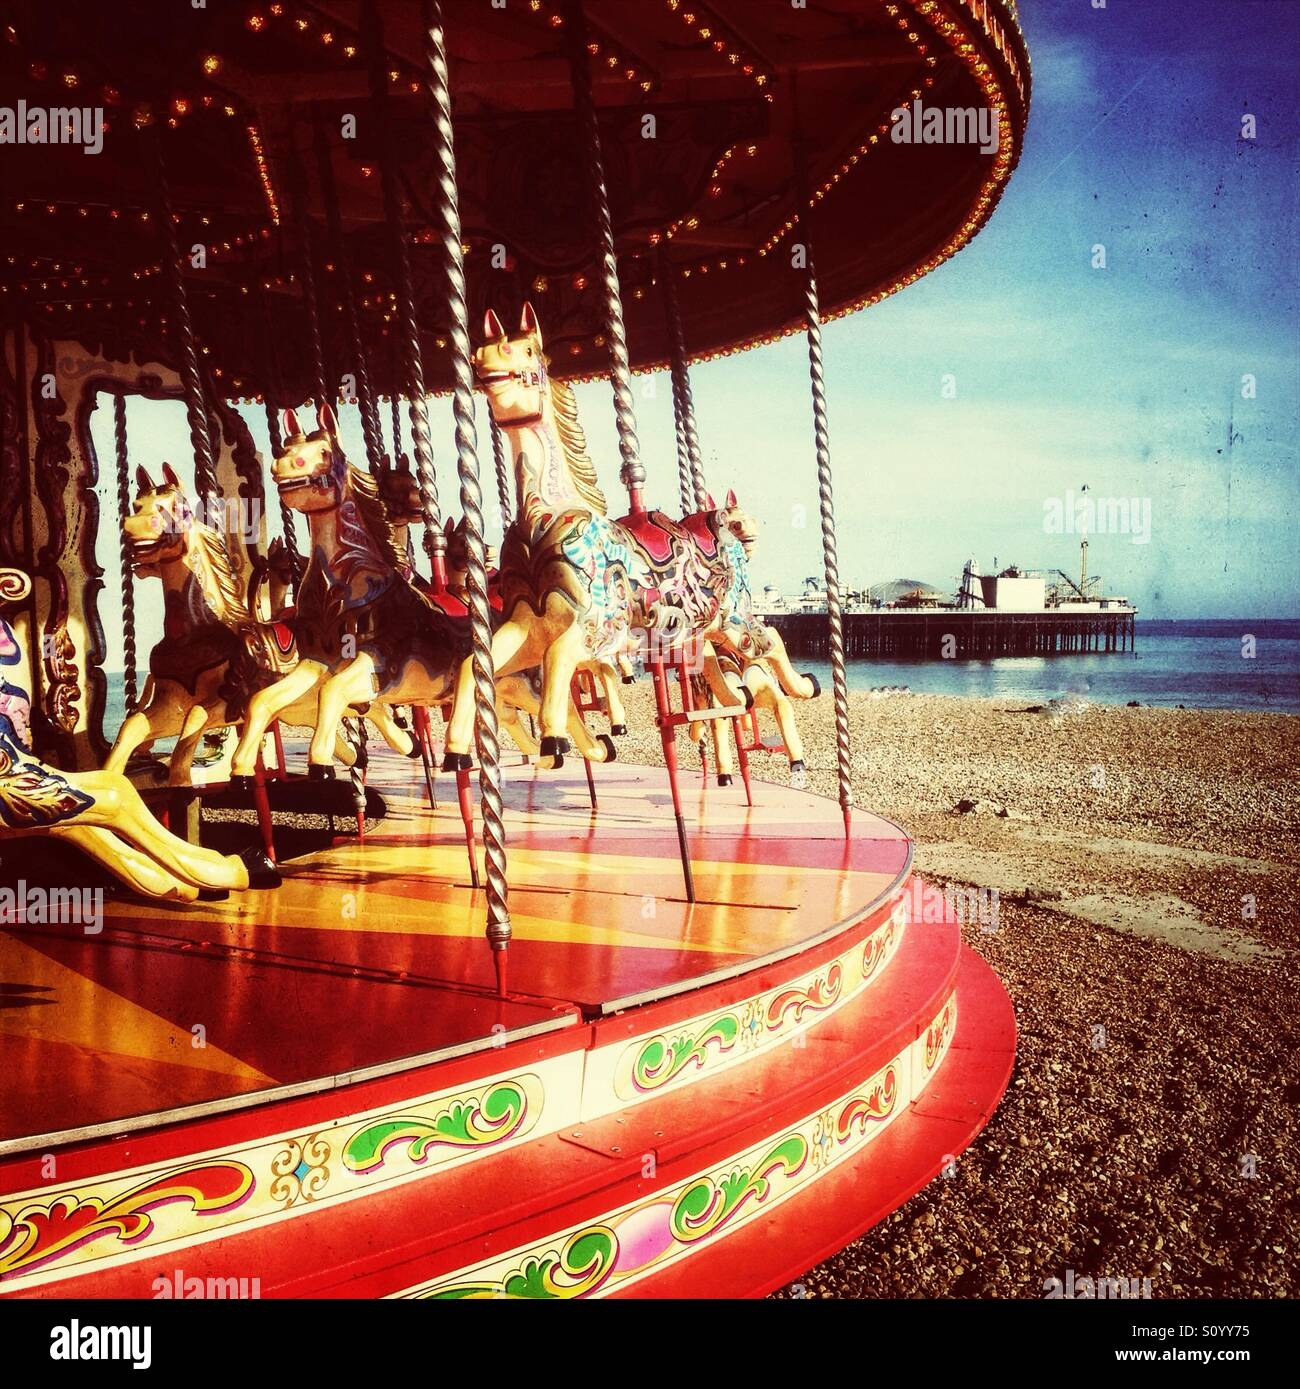 Old style carousel on brighton beach with pier in background - Stock Image